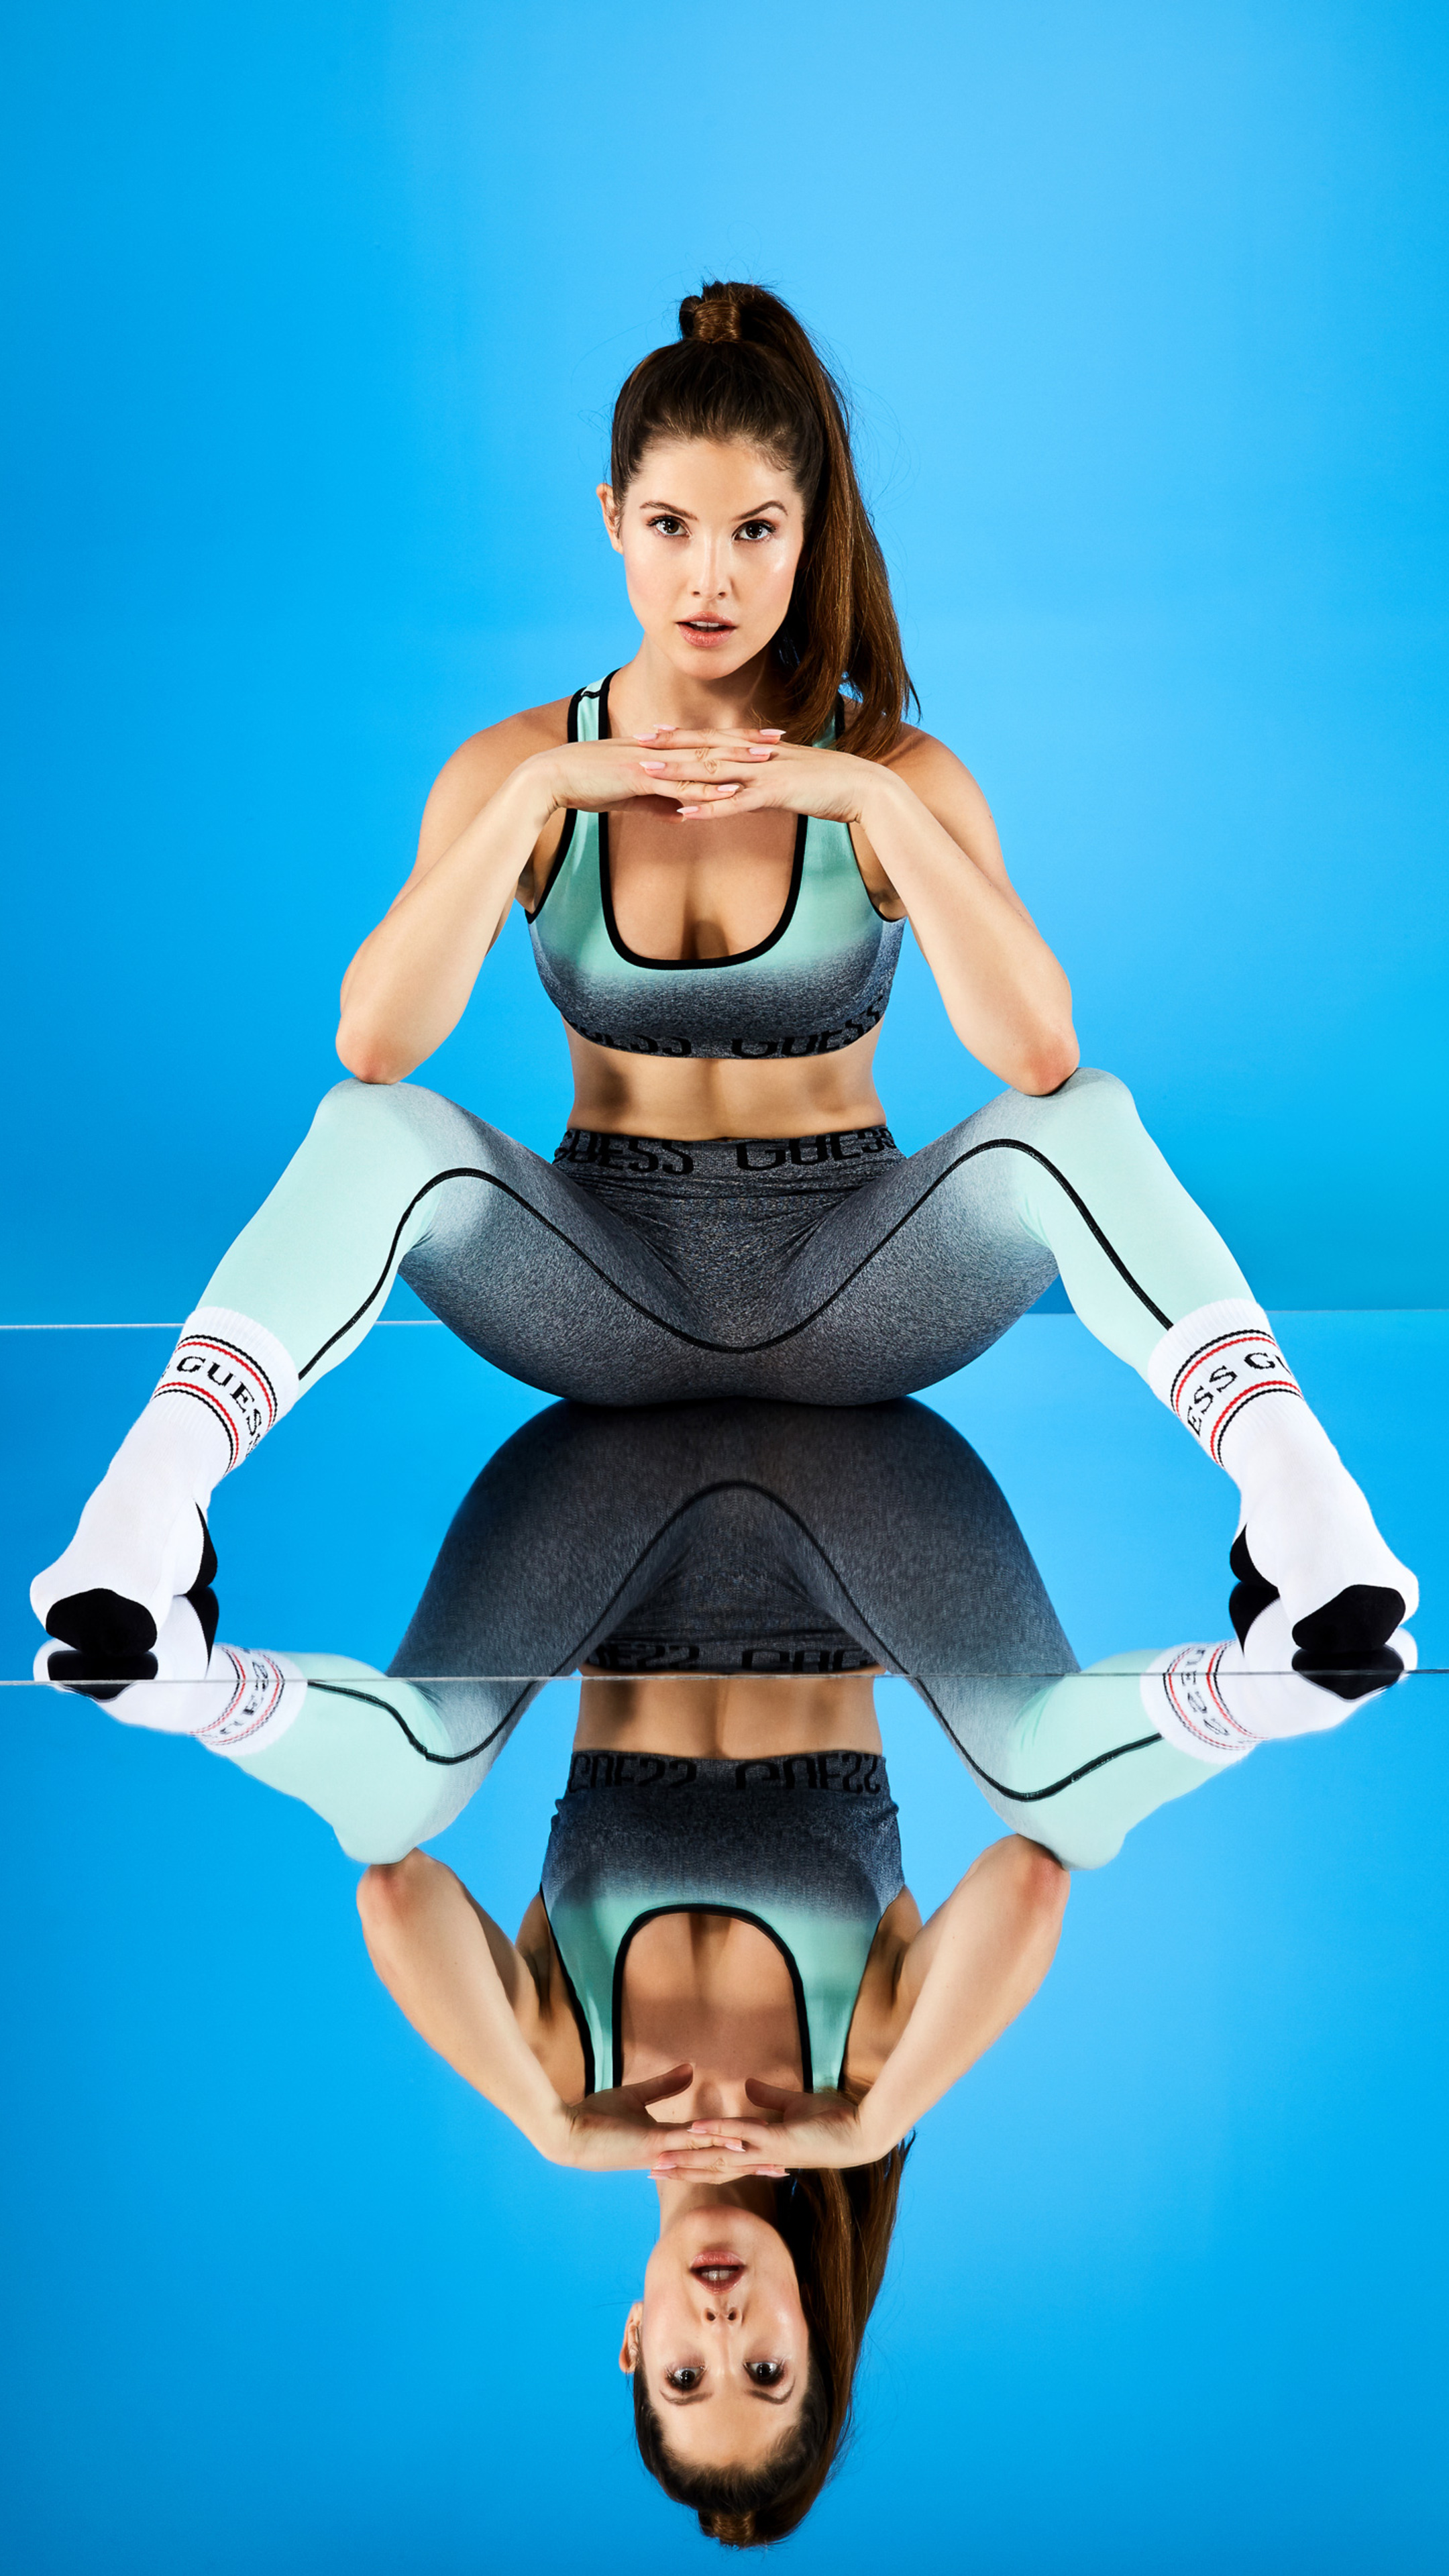 200 Anime Girl Wallpaper 2160x3840 Amanda Cerny Guess Spring 2018 Sony Xperia X Xz